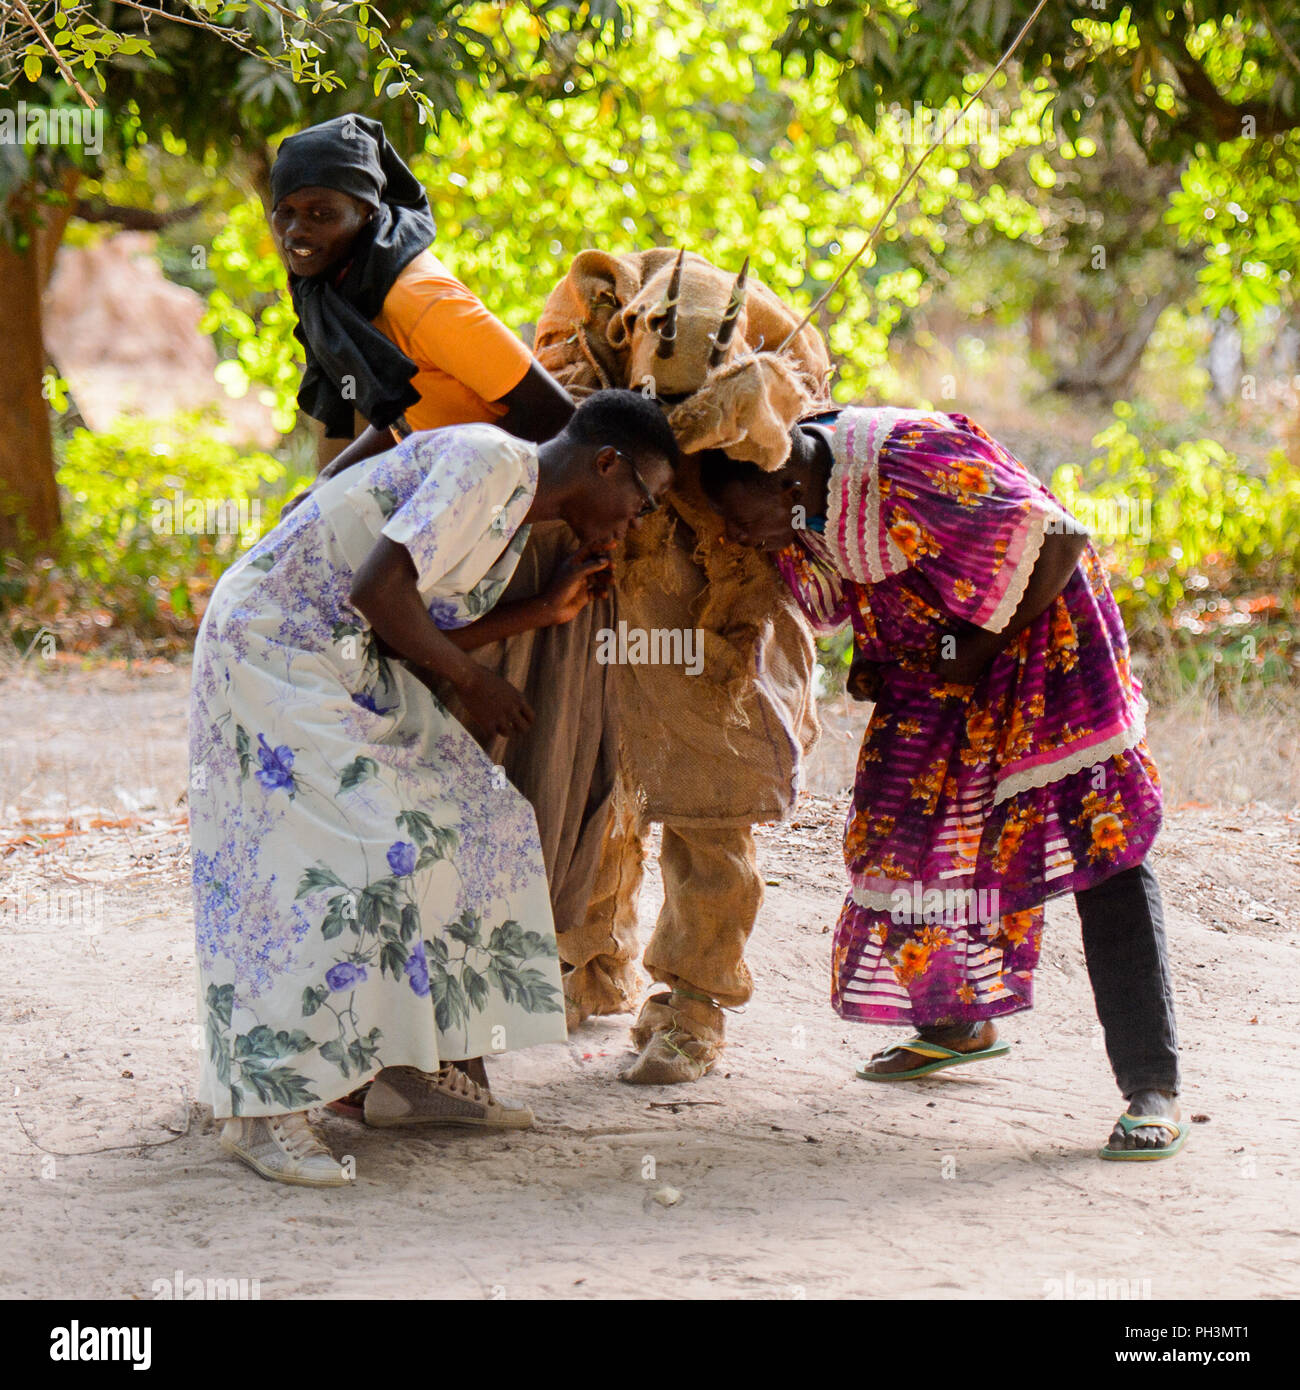 Kaguit vil., SENEGAL - APR 30, 2017: Unidentified Diola men wear skirts and move during a traditional dance Kumpo in a Sacred Forest near Kaguit villa - Stock Image